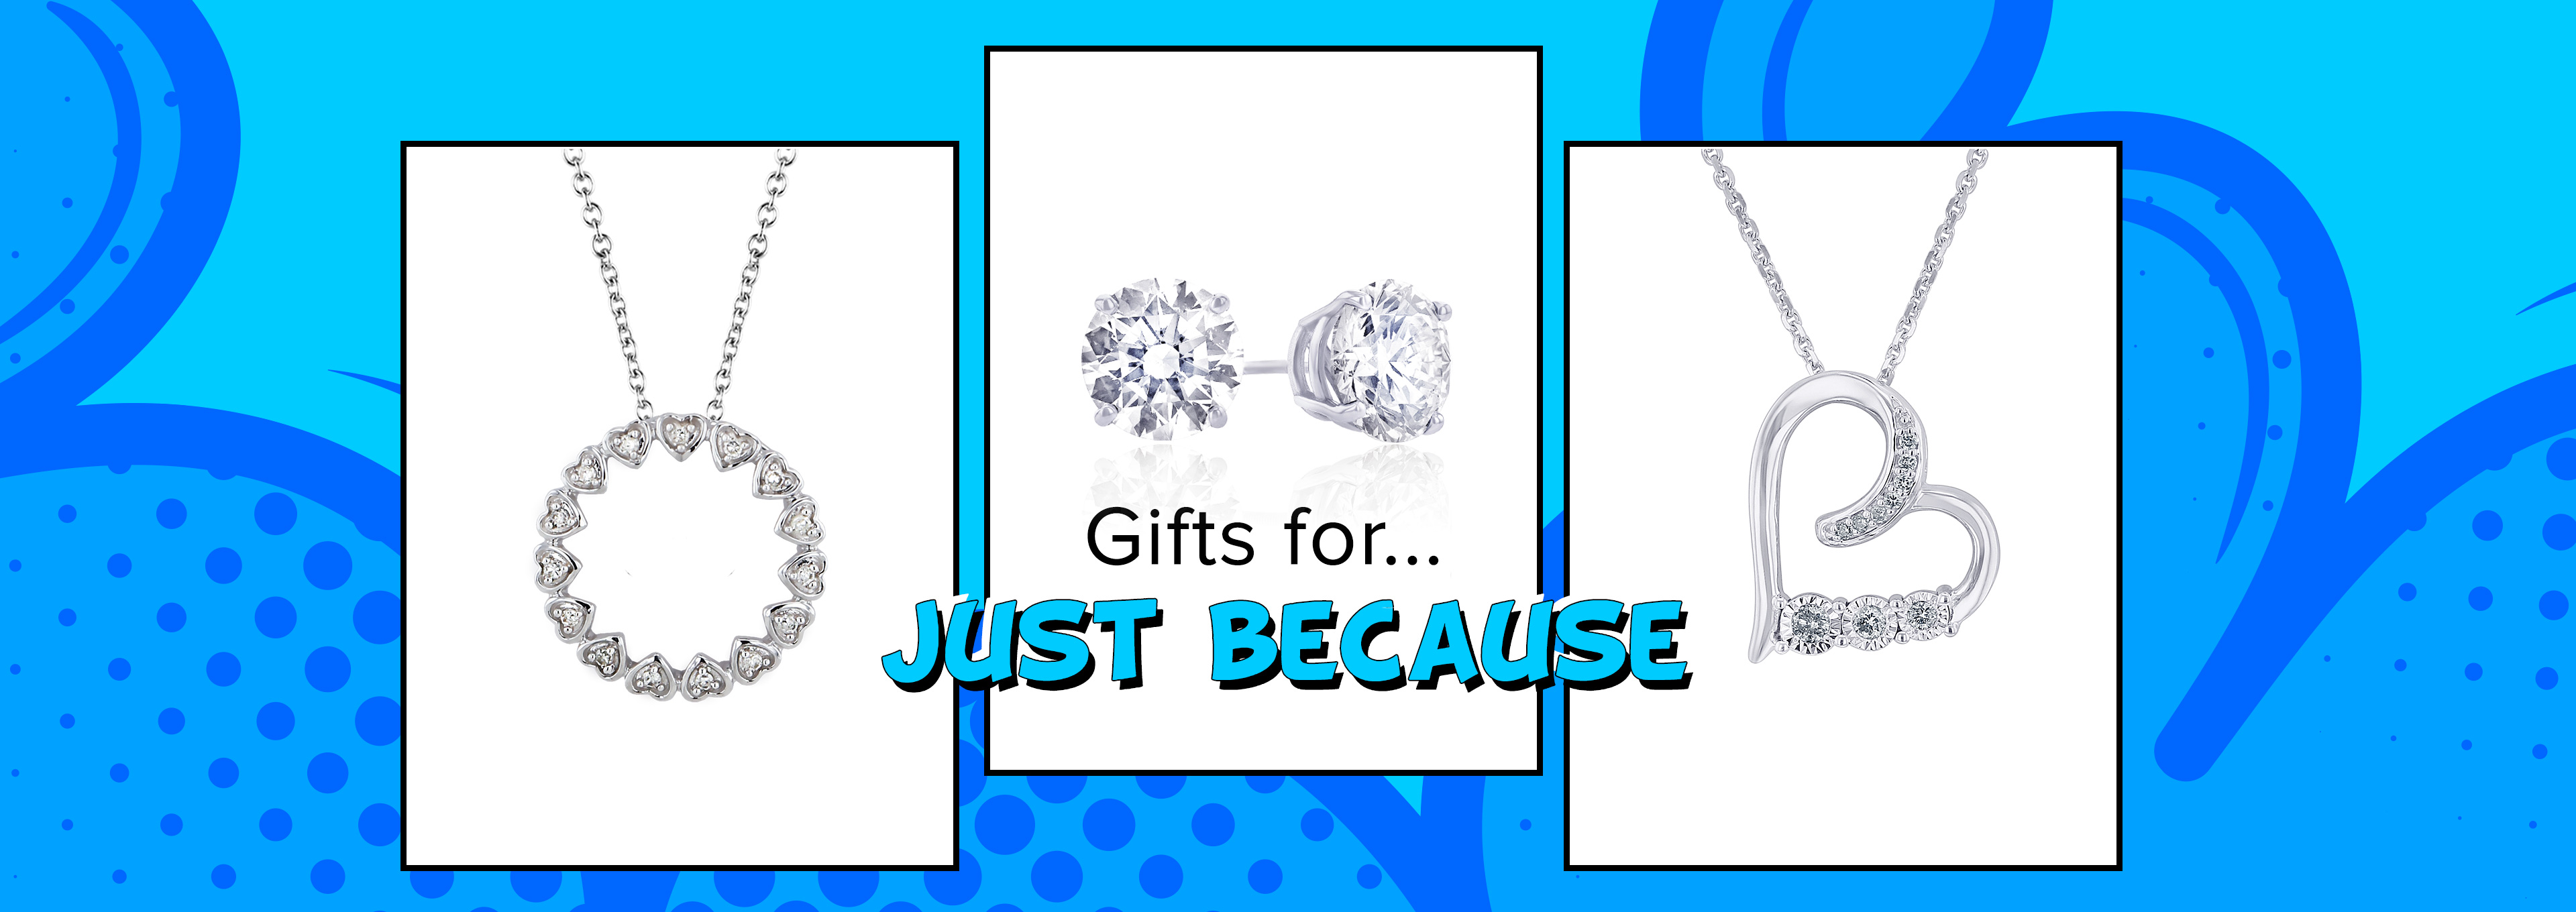 Diamond gifts for just because collection